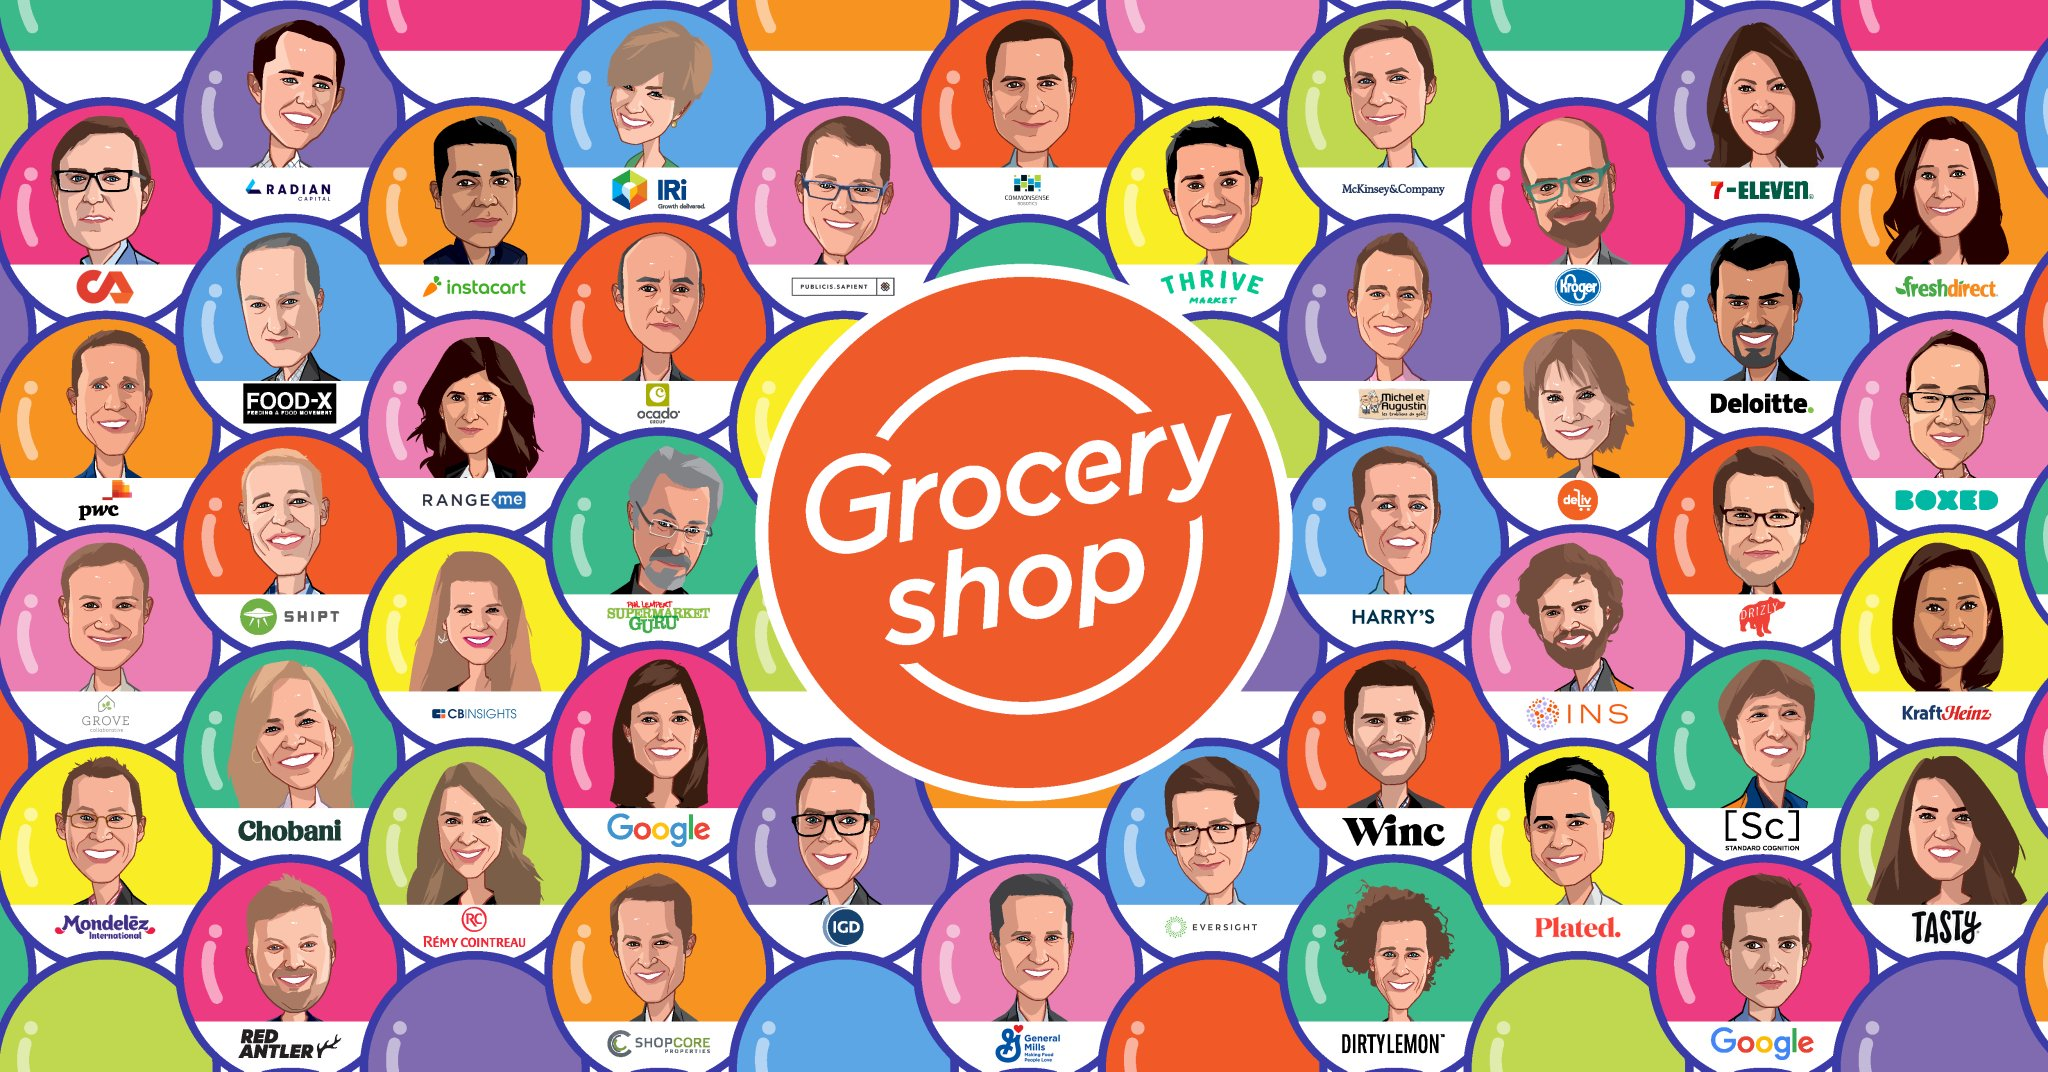 22 Takeaways from GroceryShop